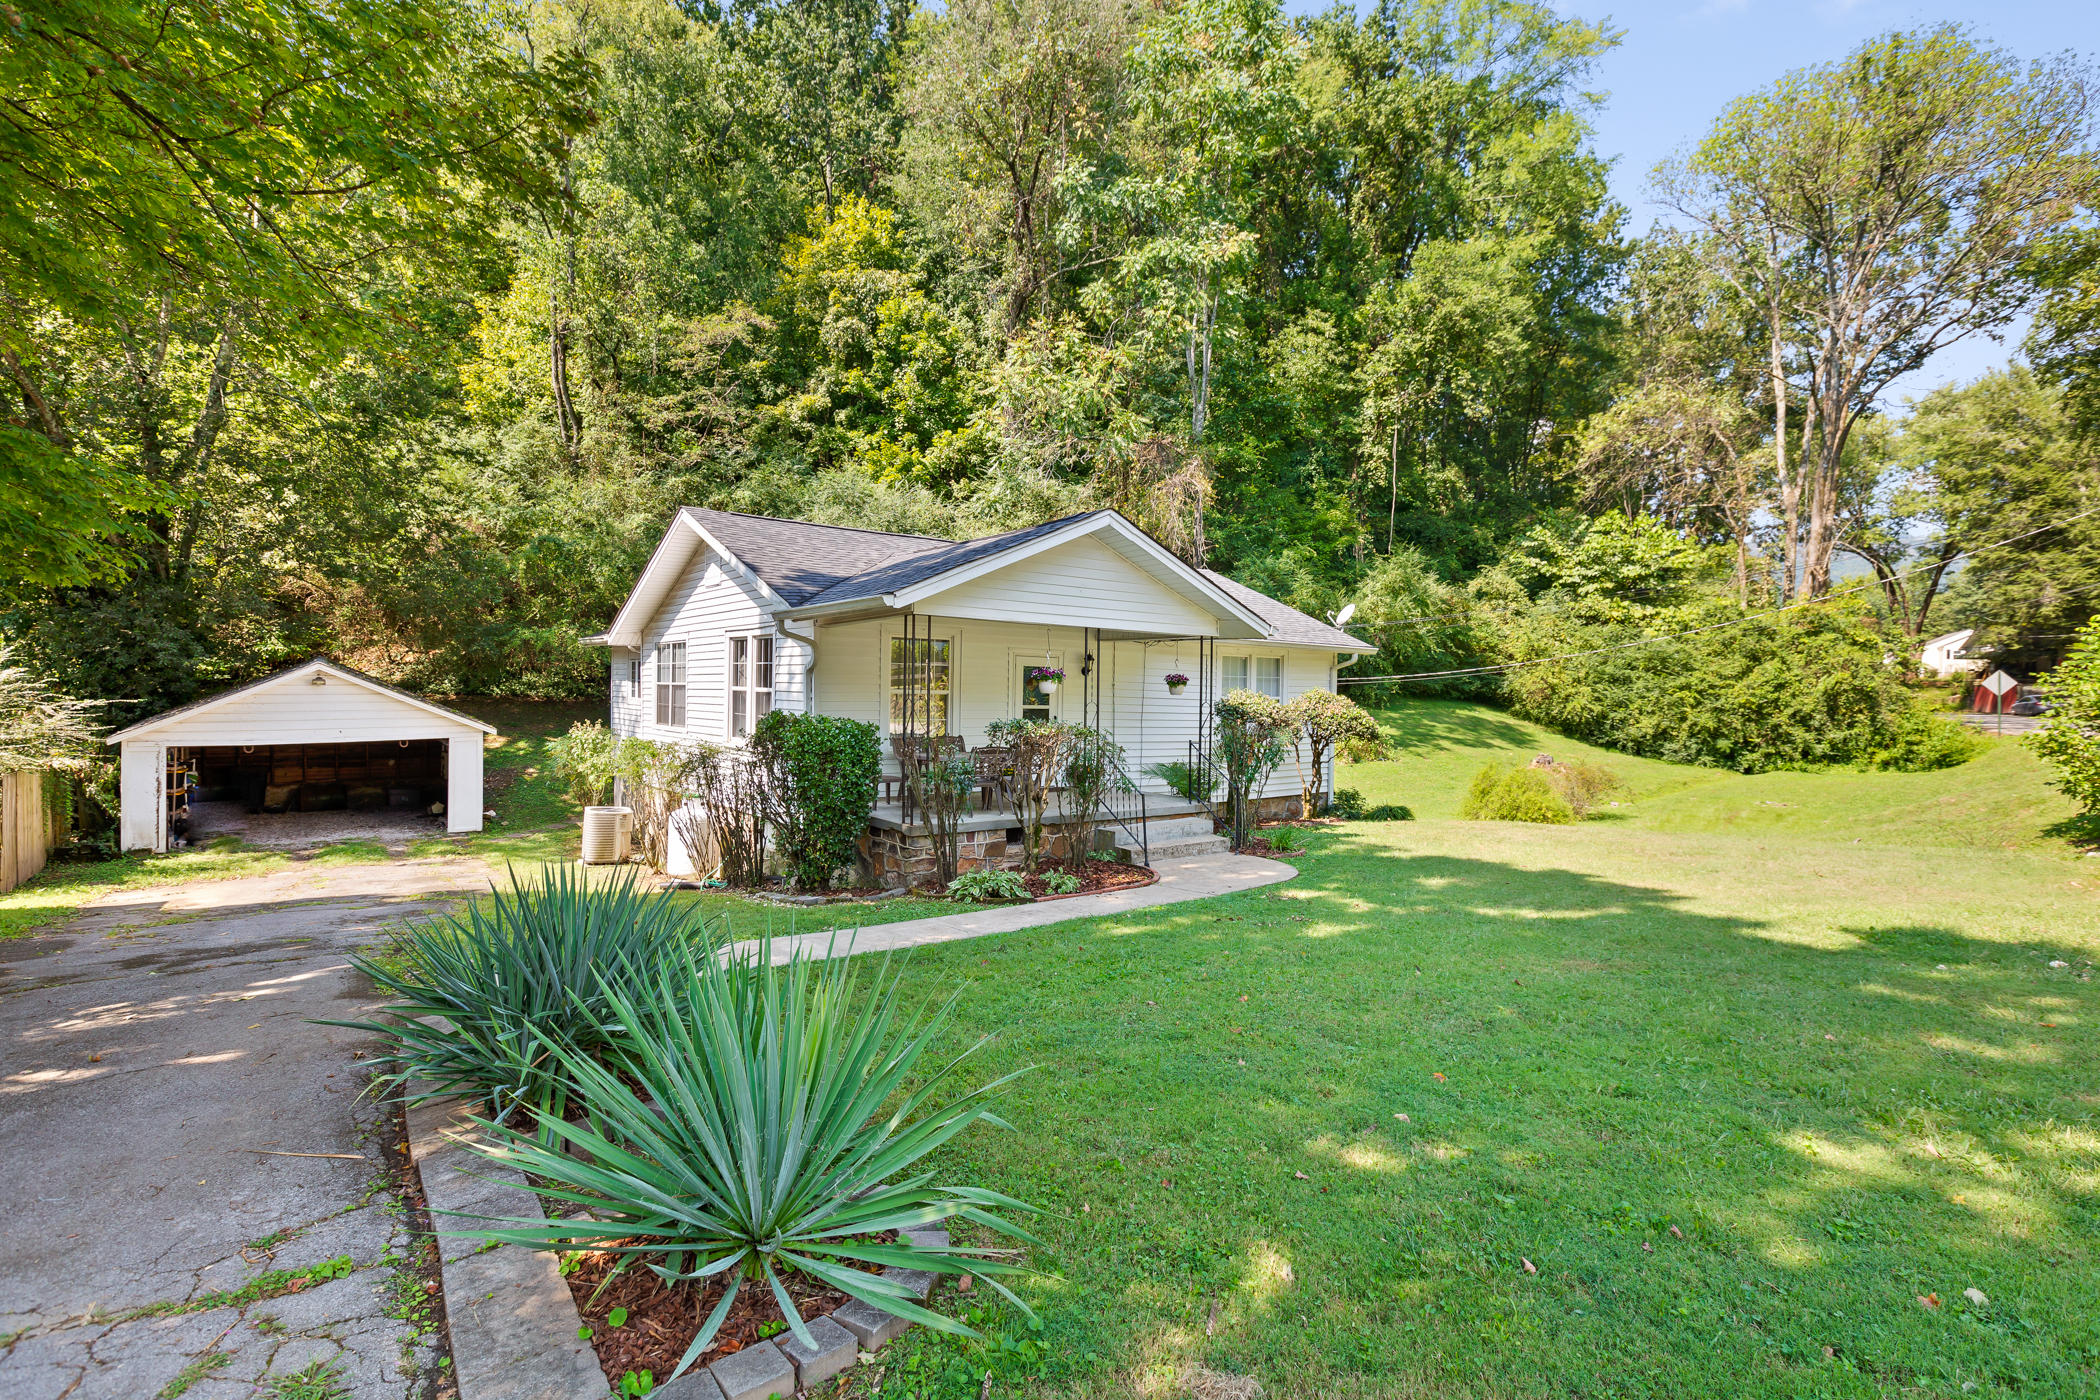 422 Reads Lake Rd, Chattanooga, TN 37415